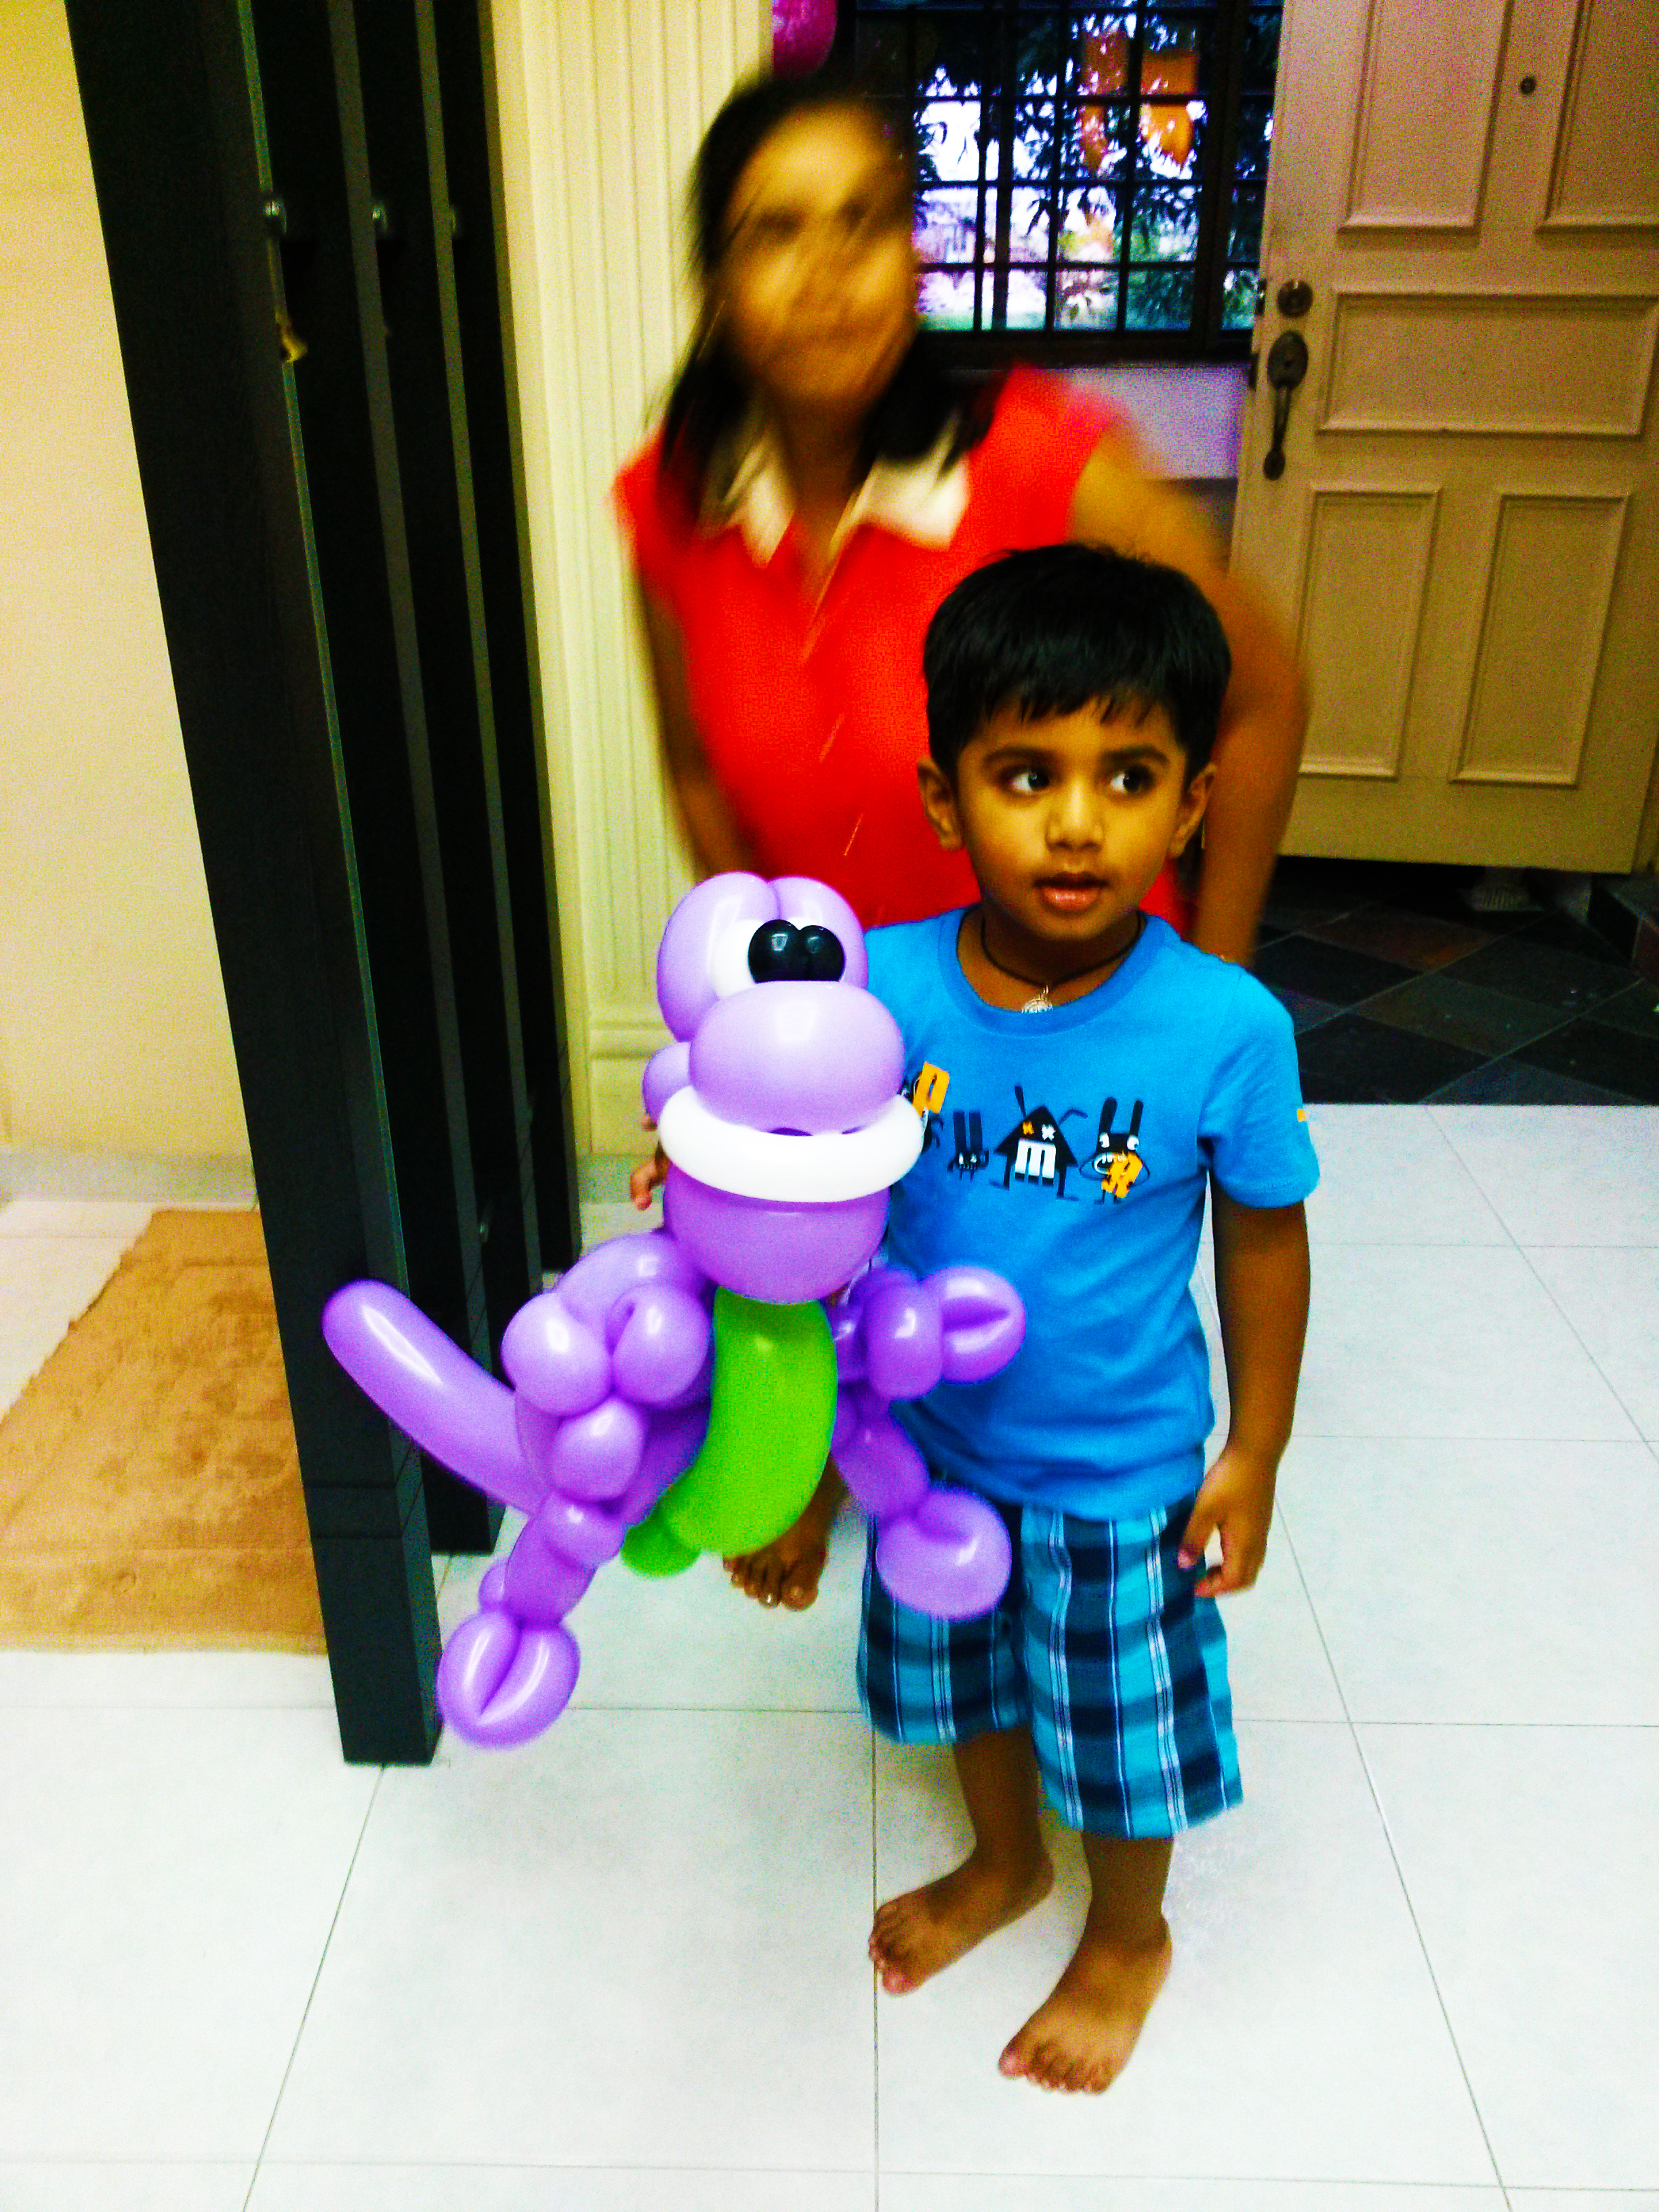 , My man in balloon show! and some of my other events this few days., Singapore Balloon Decoration Services - Balloon Workshop and Balloon Sculpting